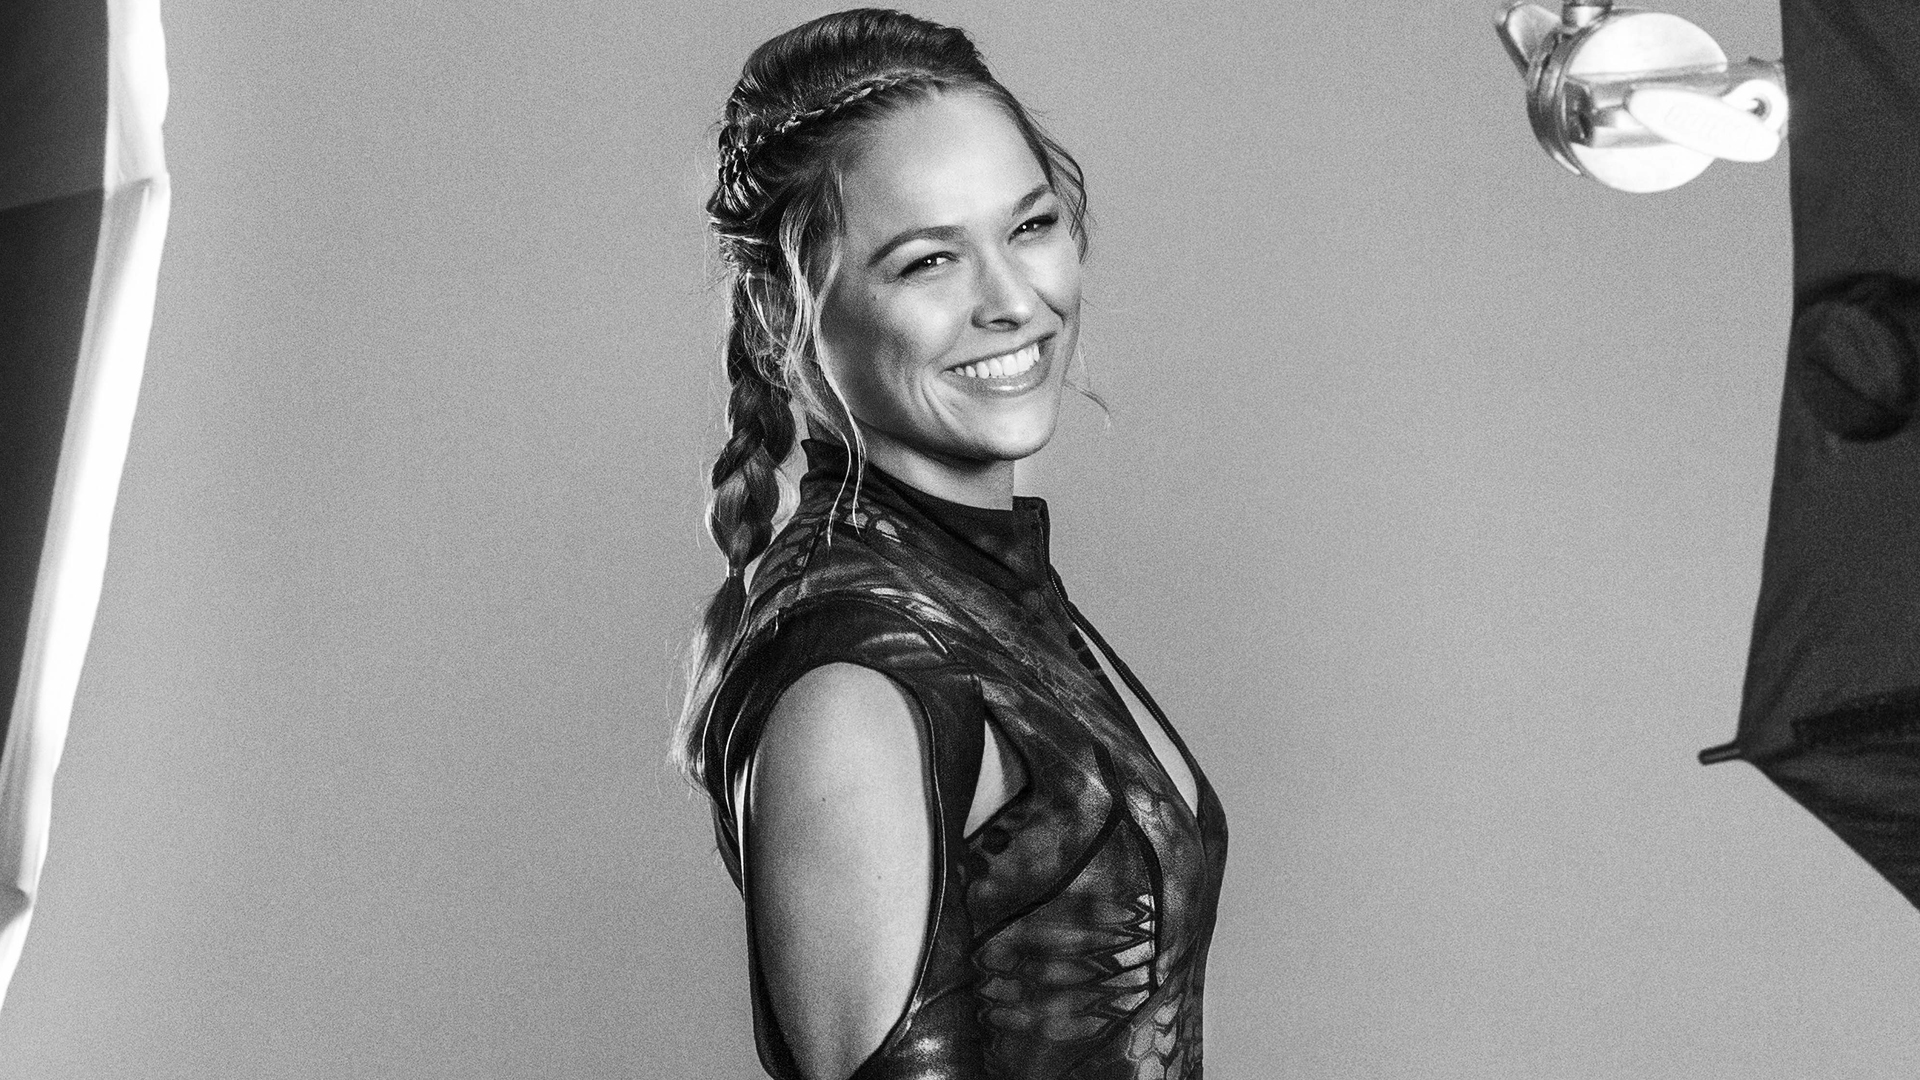 ronda rousey expendables 3 wallpaper hd